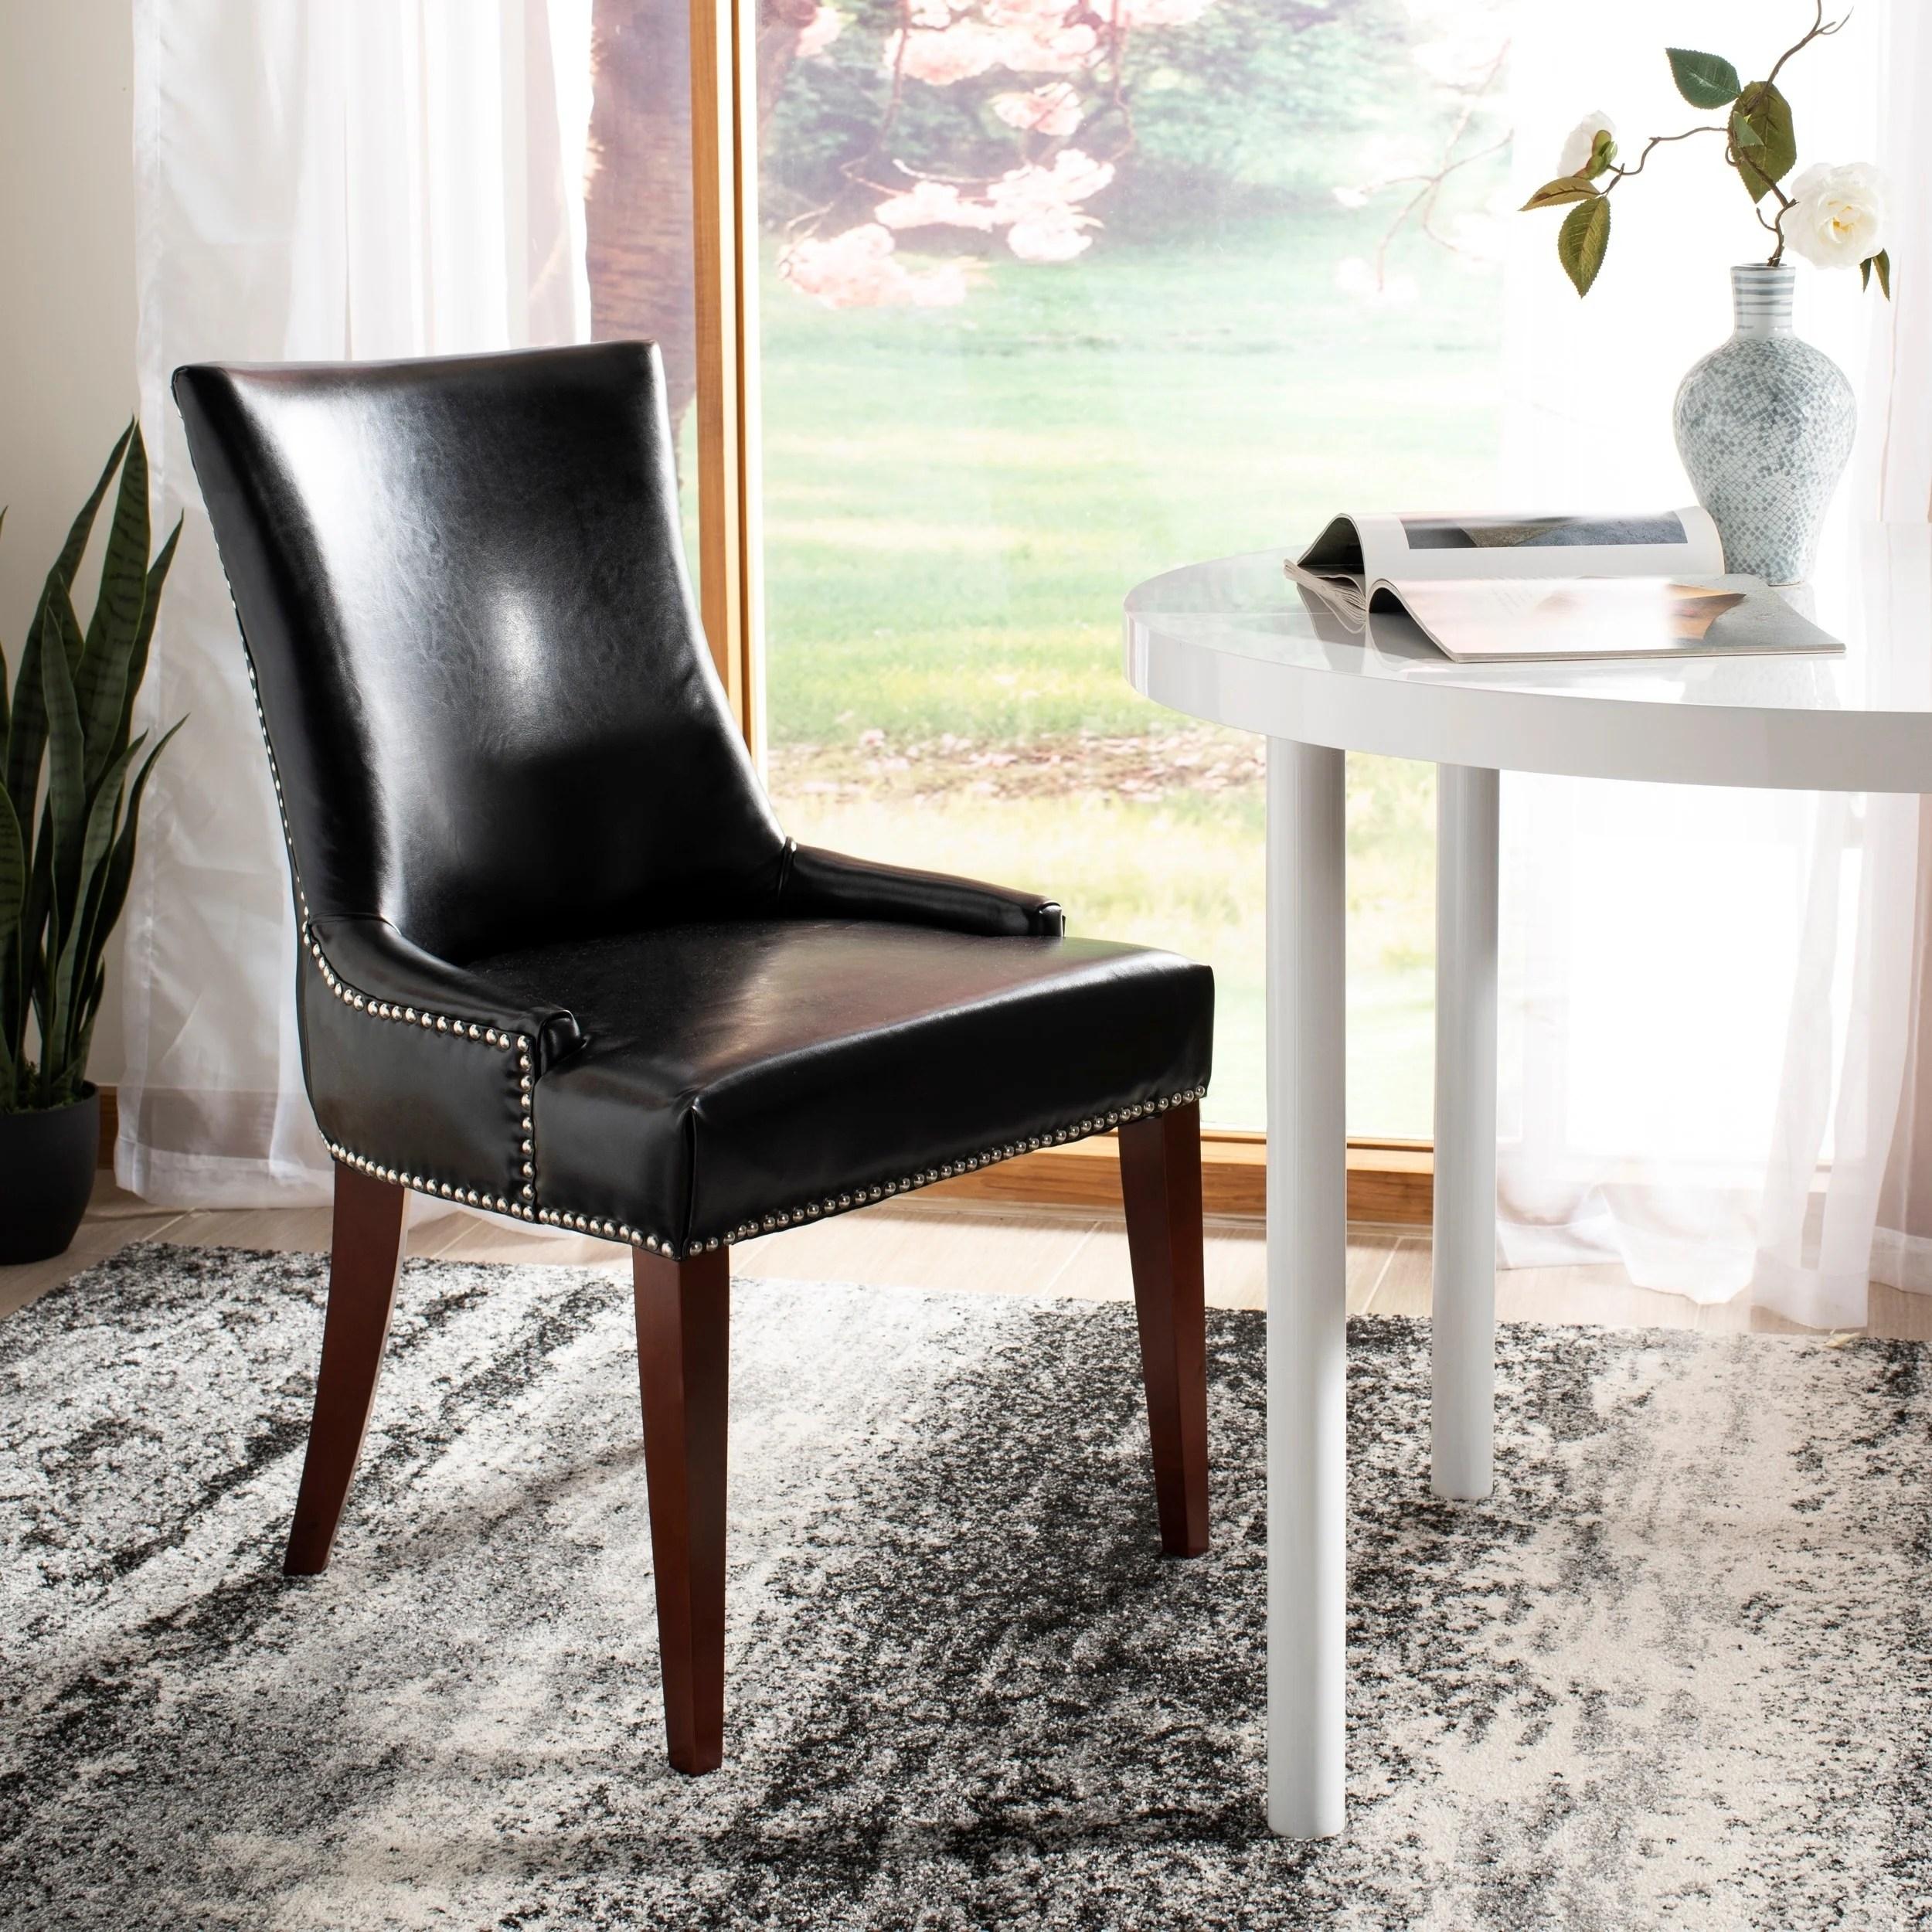 Black Leather Dining Chairs Safavieh En Vogue Dining Becca Leather Dining Chair Black